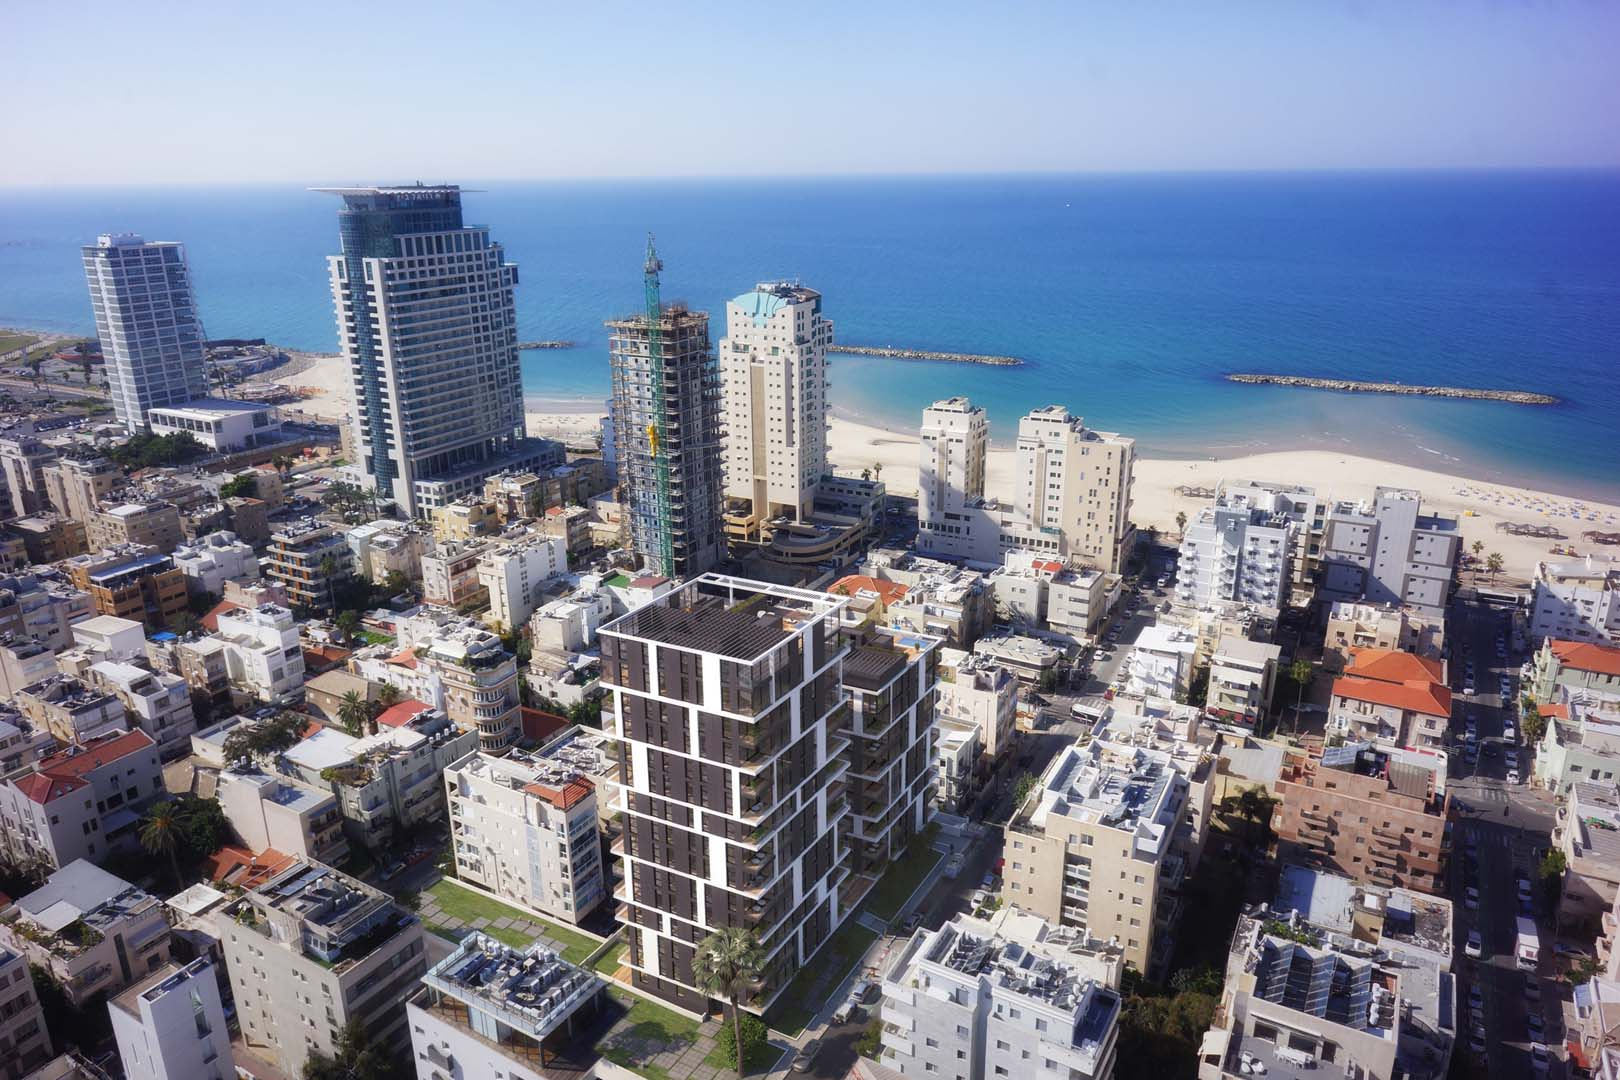 'Appartement' building or community at 'Serene Sea View Apartments in a New Project Living by the Sea Tel Aviv, Israel 6380810 Israel'